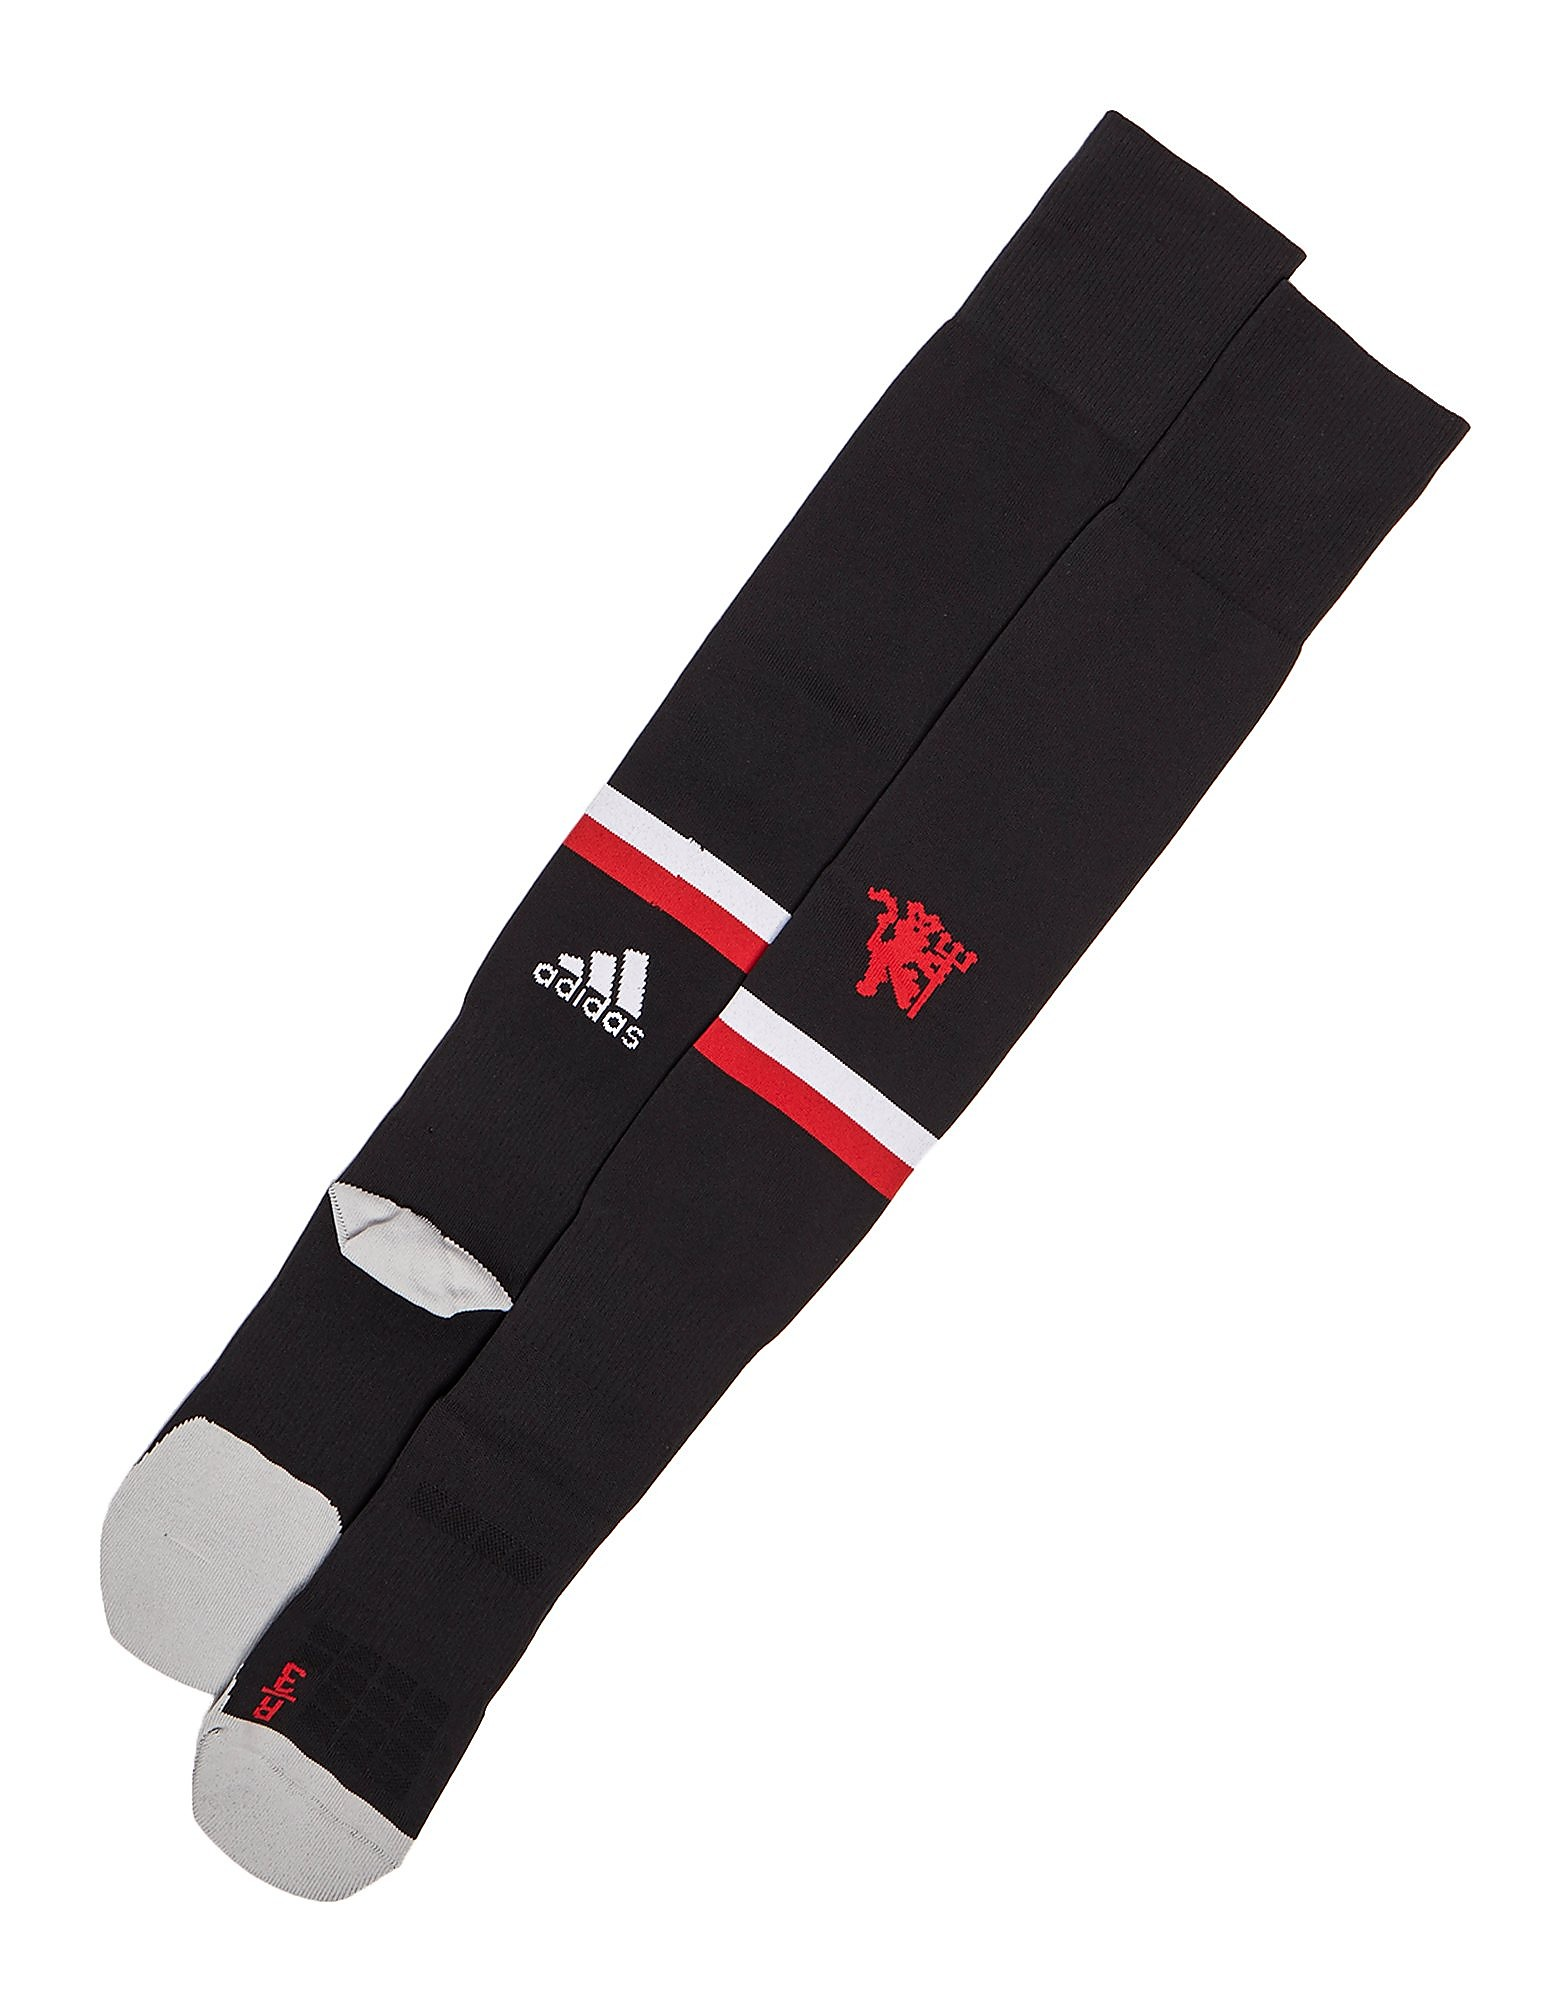 adidas Manchester United 2017/18 Home Socks